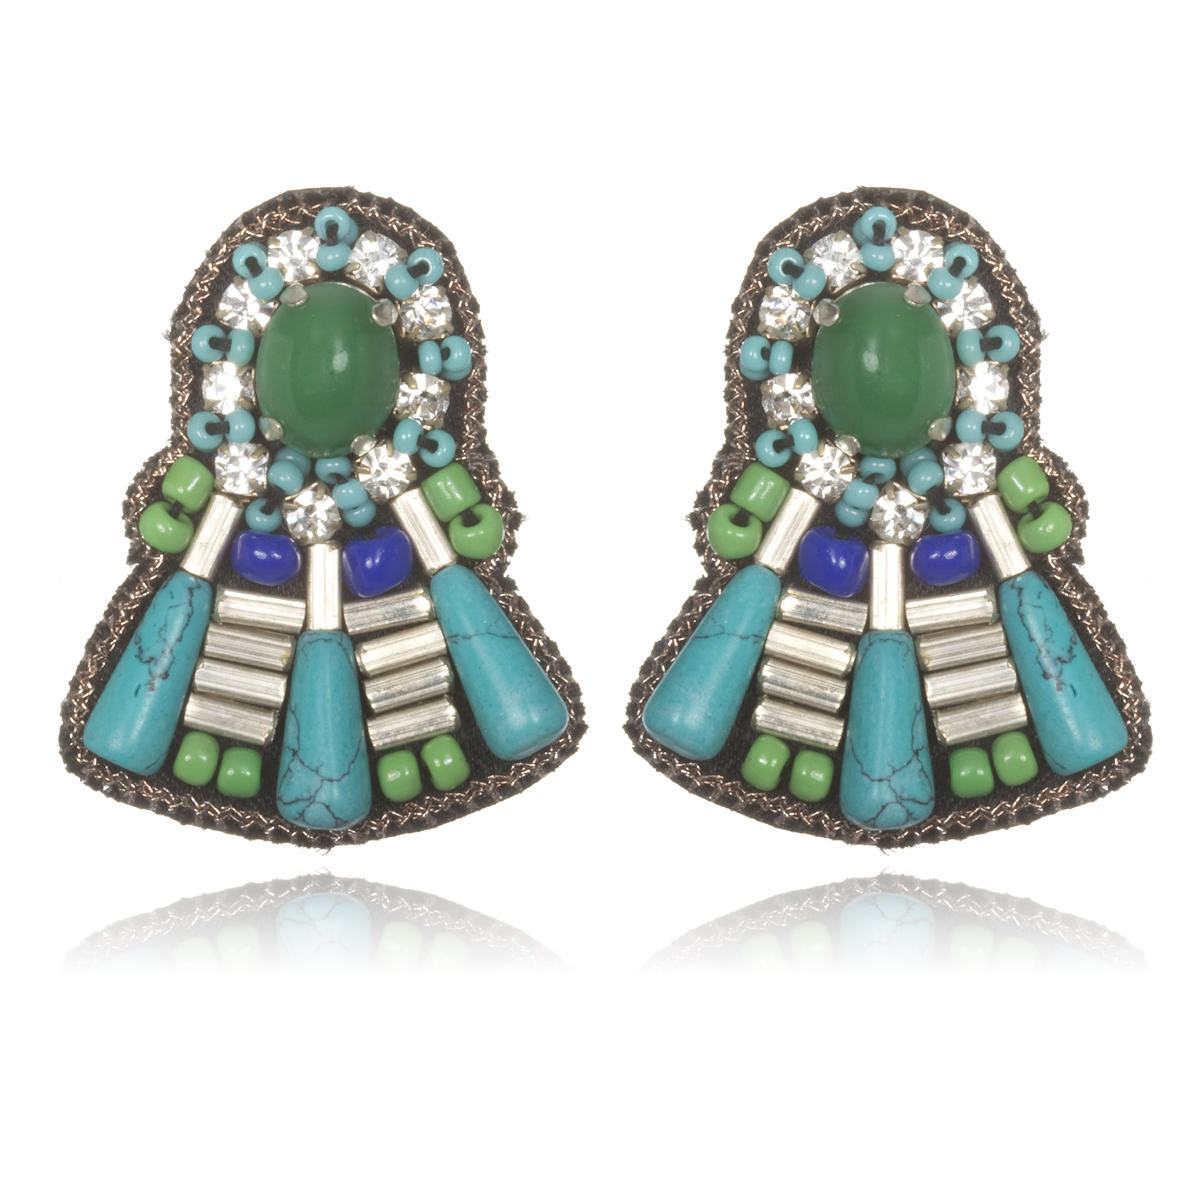 Rajasthan Fan Earrings by SUZANNA DAI